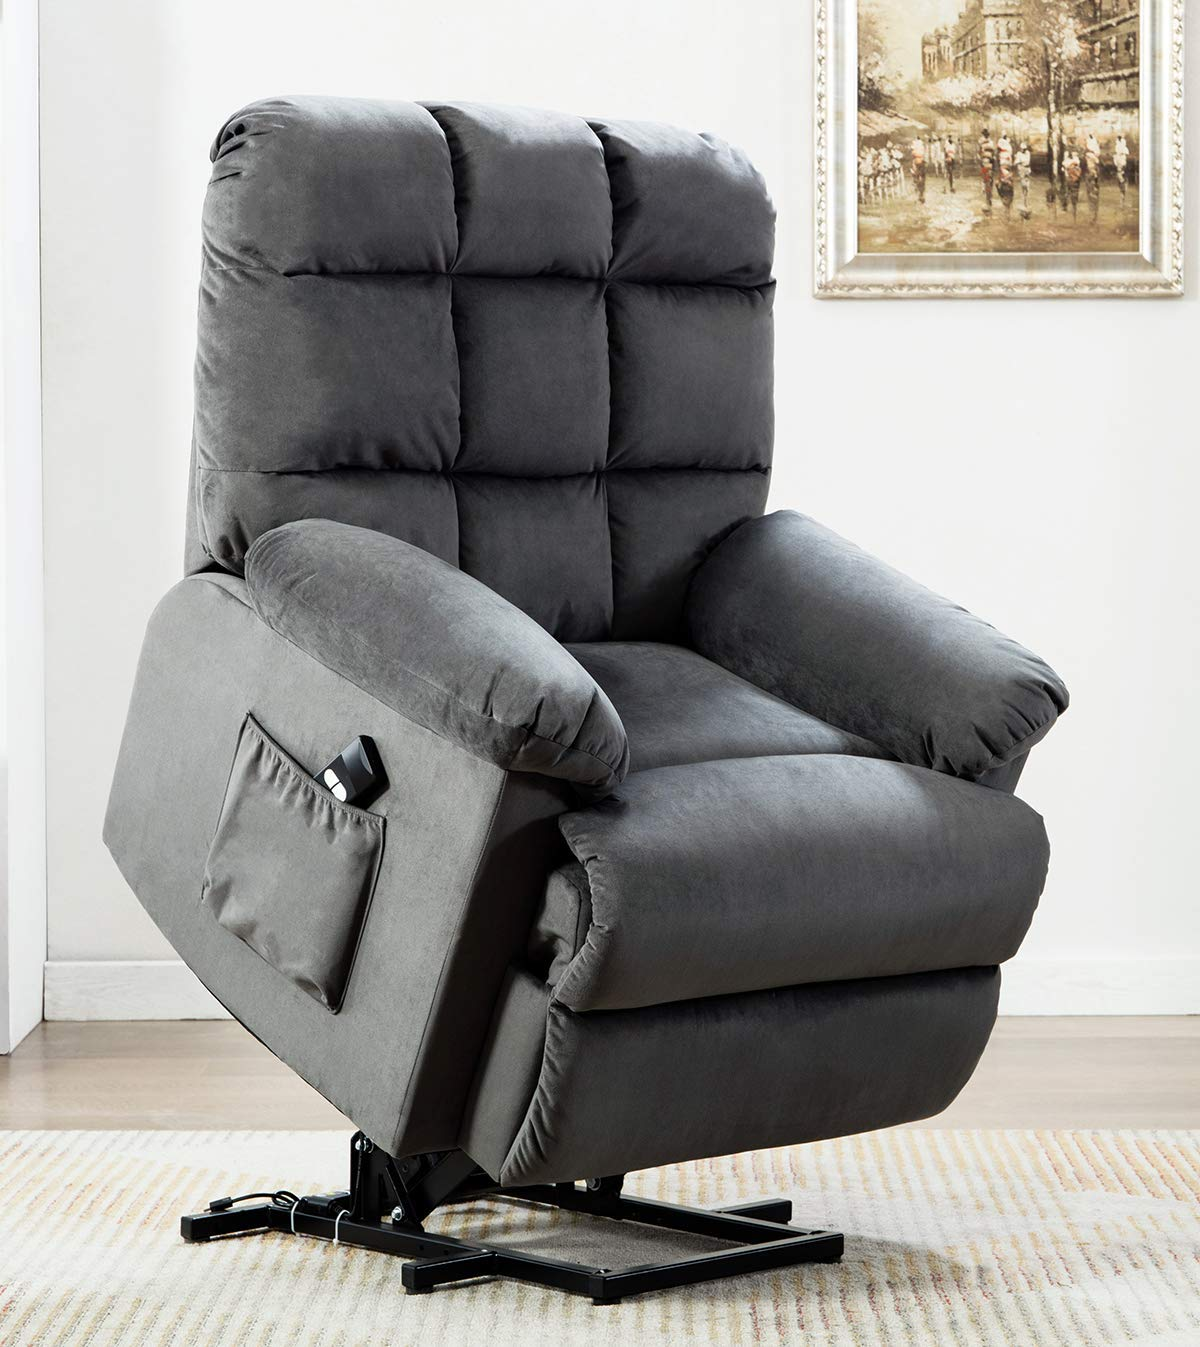 ANJ Power Lift Recliner Chair for Elderly with Over Stuffed Armrest and Comfort Broad Backrest, Remote Control for Gentle Motor, Bluish Grey by ANJ